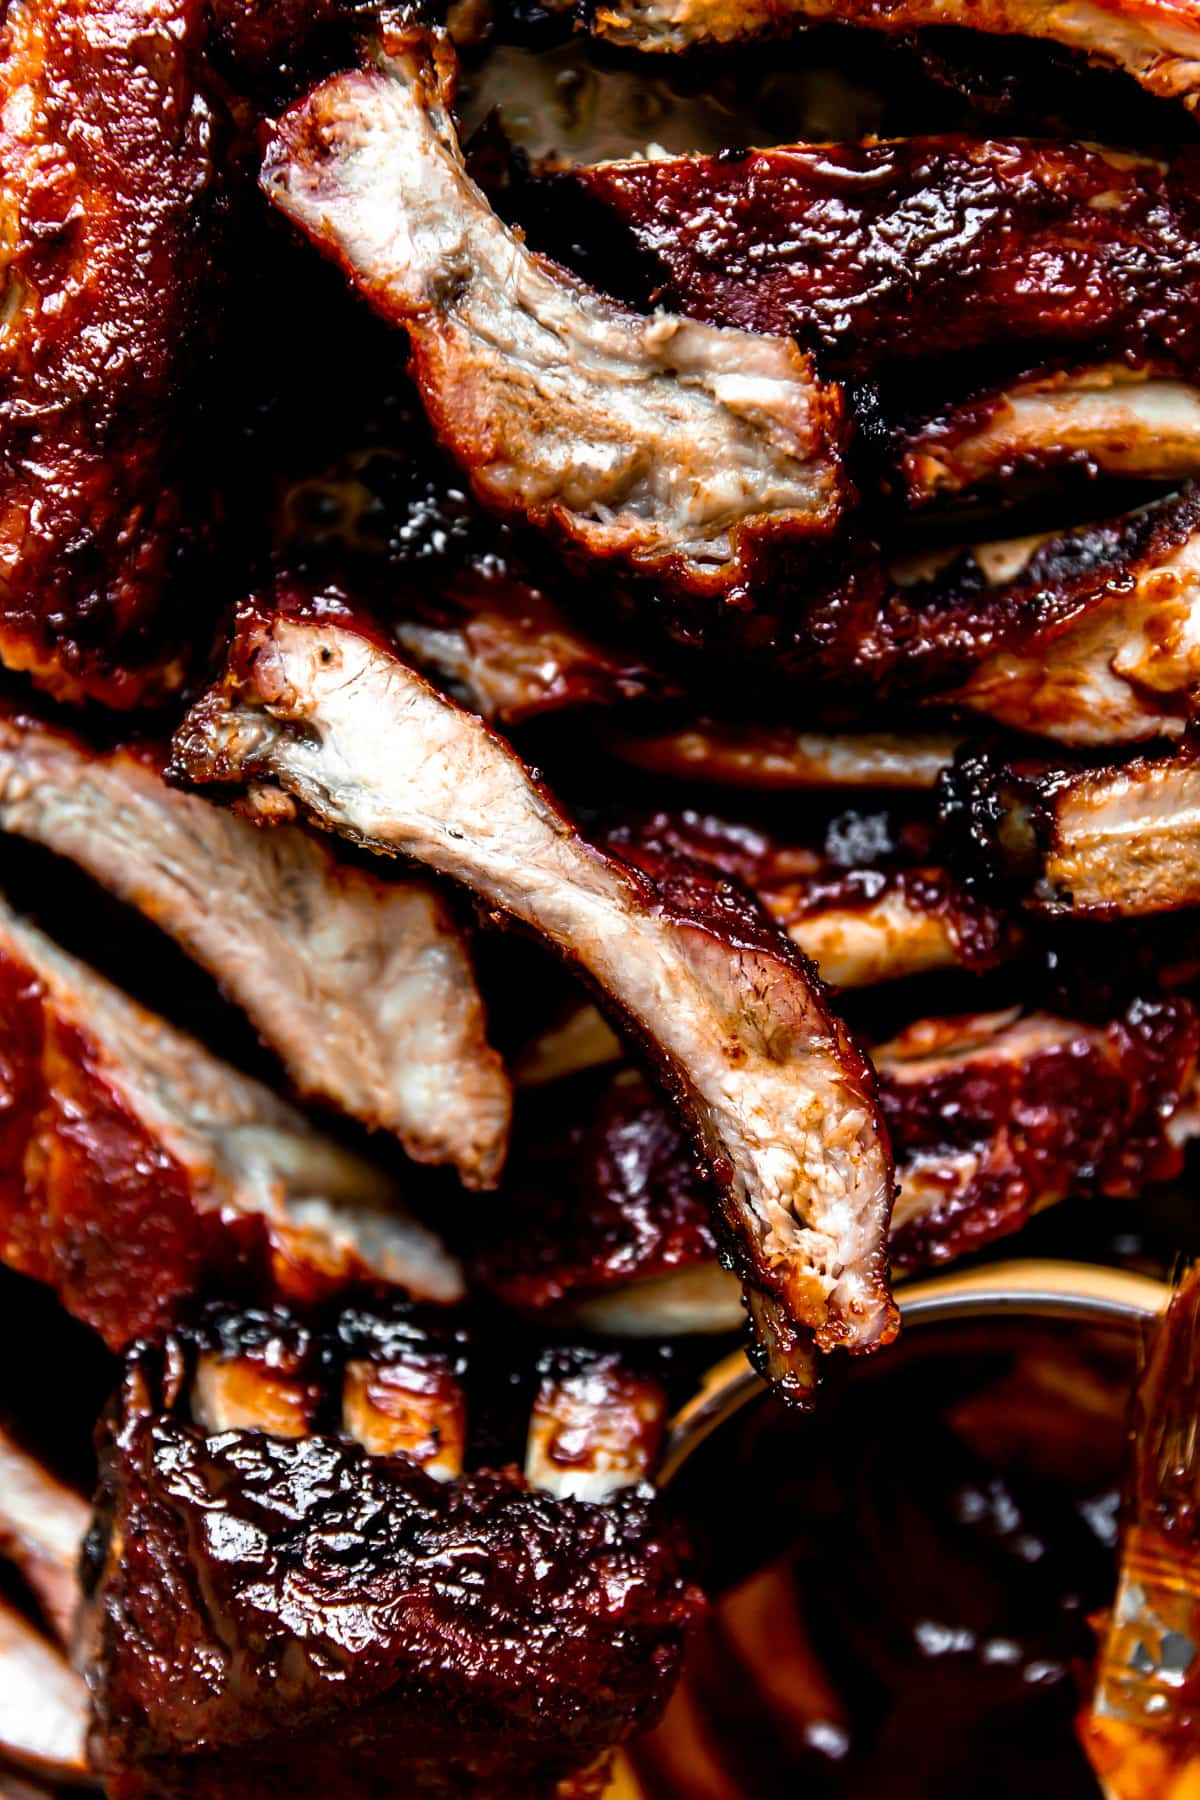 Sliced pork ribs that have been smoked all stacked and ready to serve.